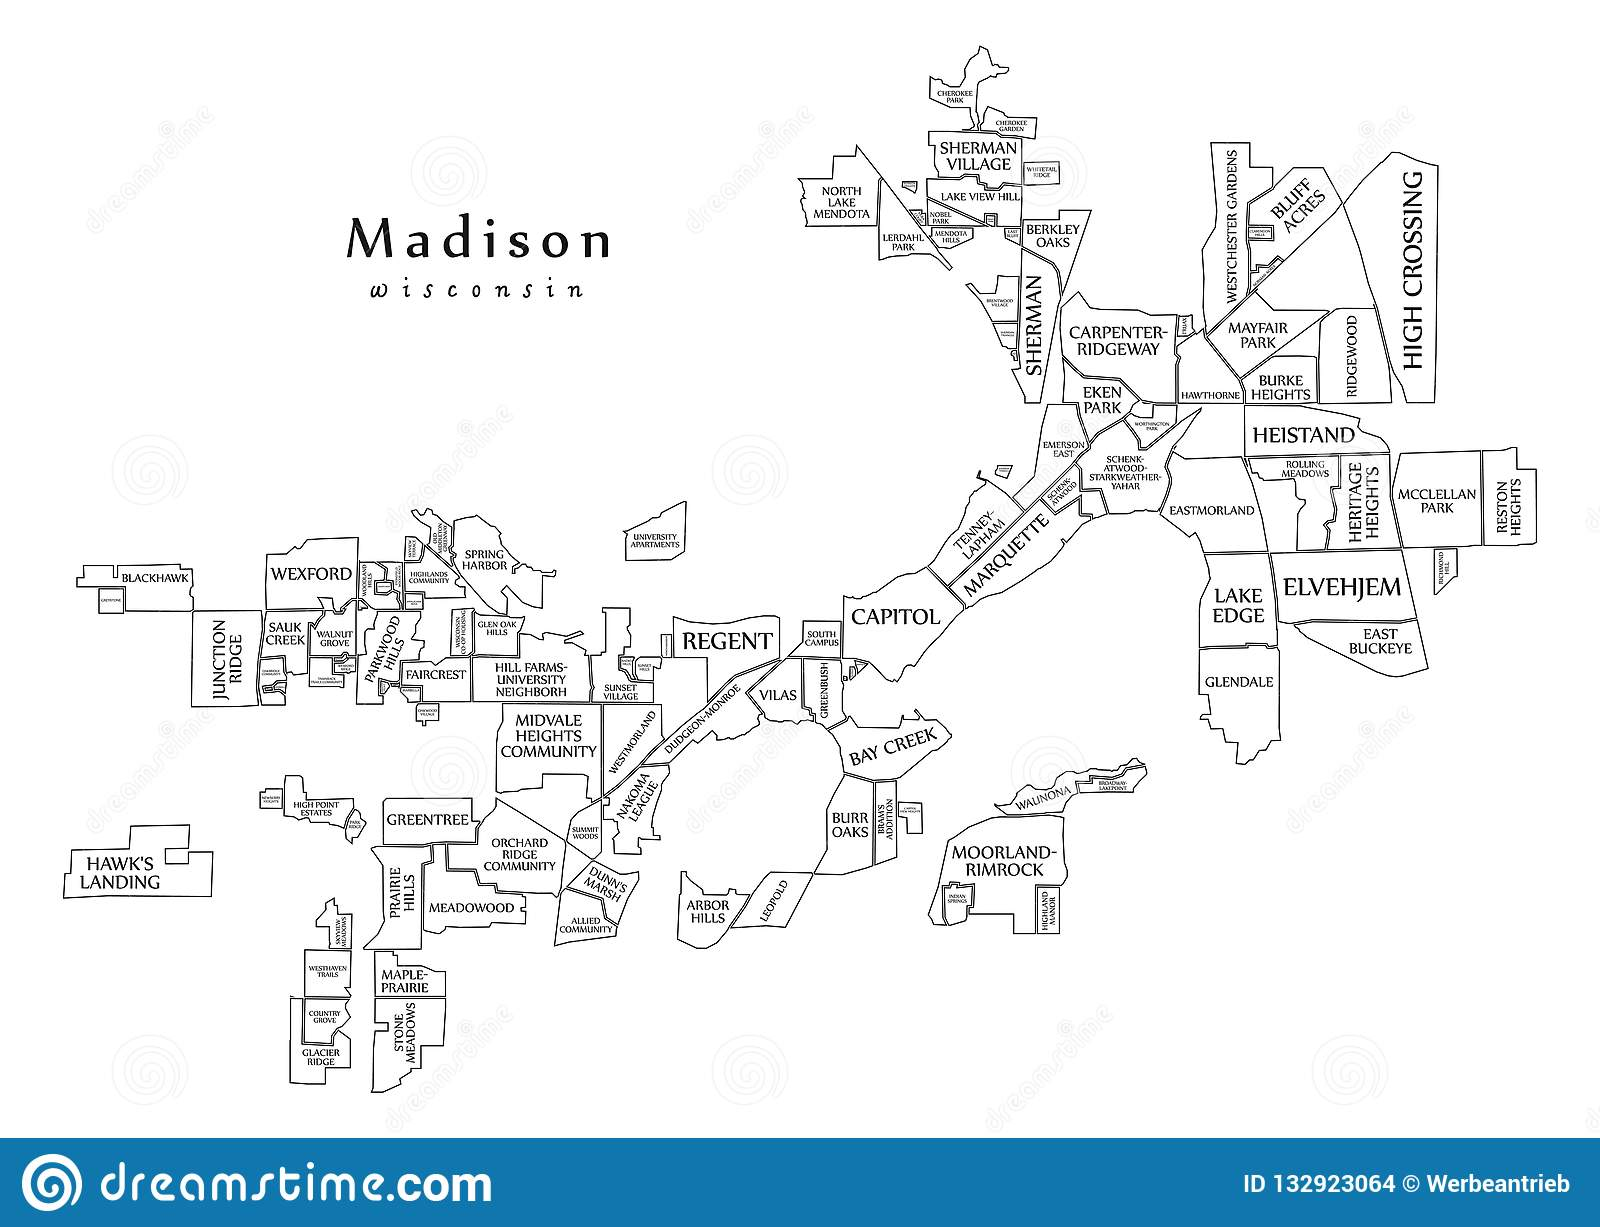 Modern City Map - Madison Wisconsin City Of The USA With ... on